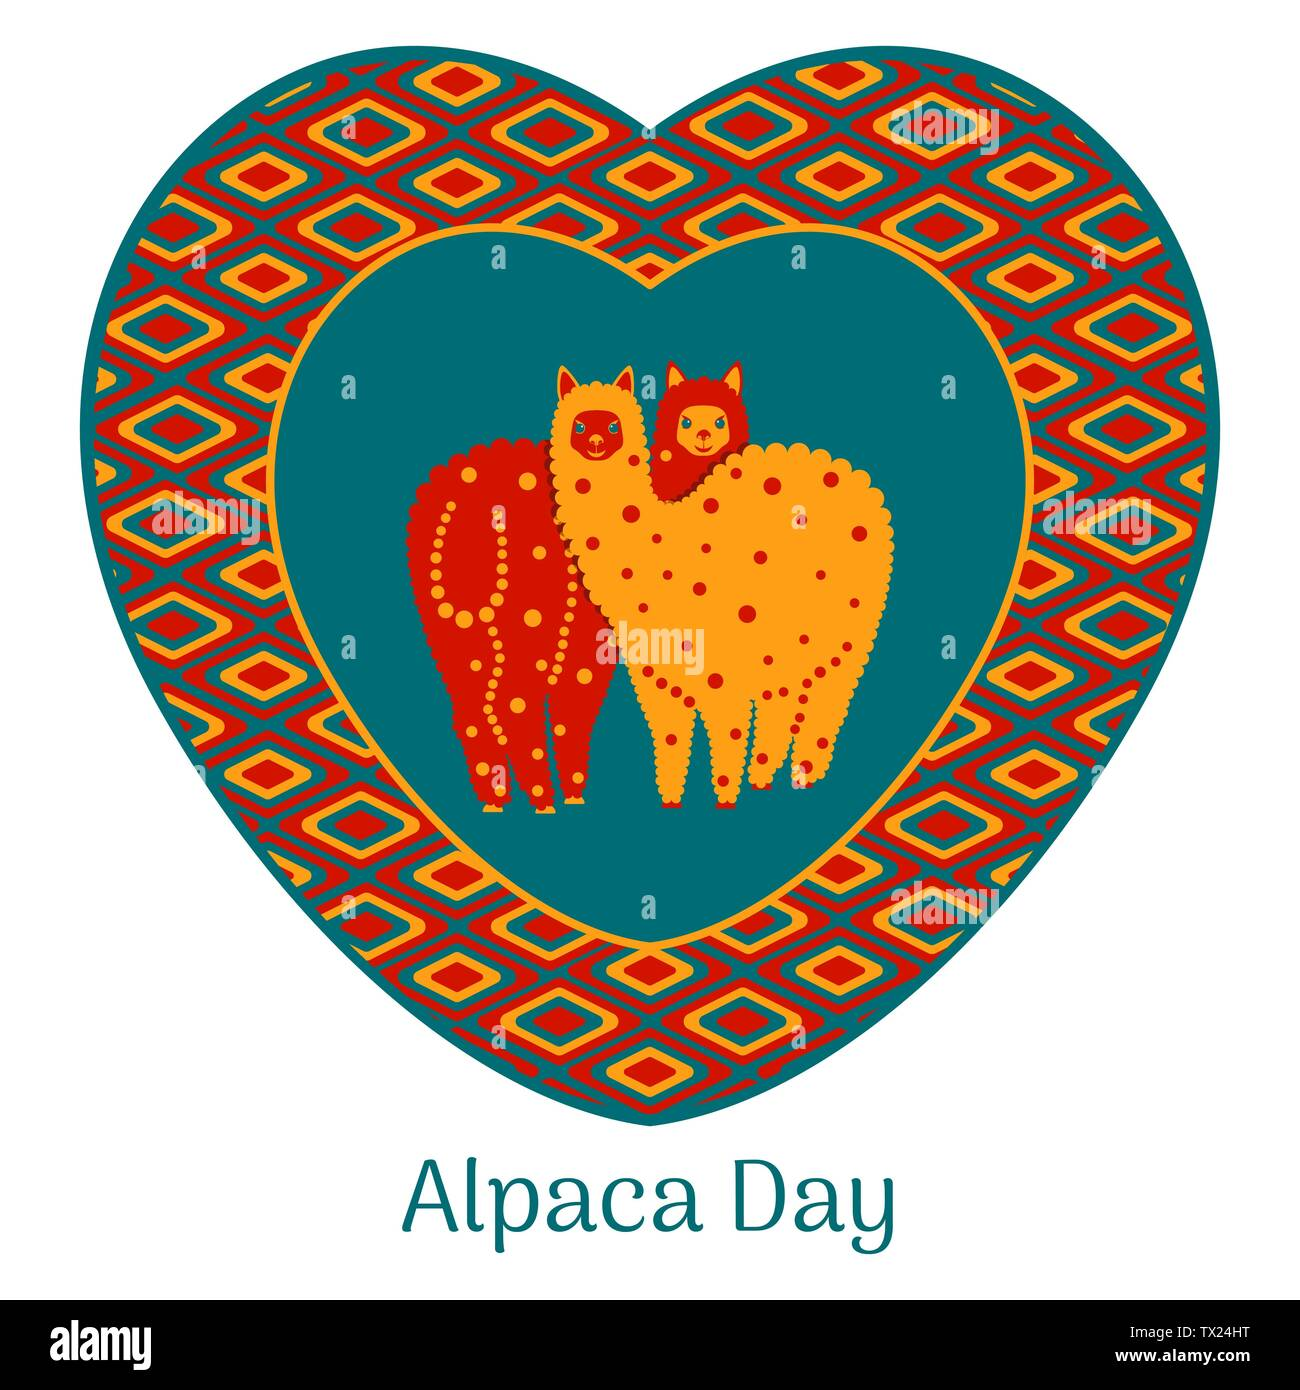 Alpaca Day. National holiday in Peru. Alpaca couple in love framed heart with national ornament - Stock Vector